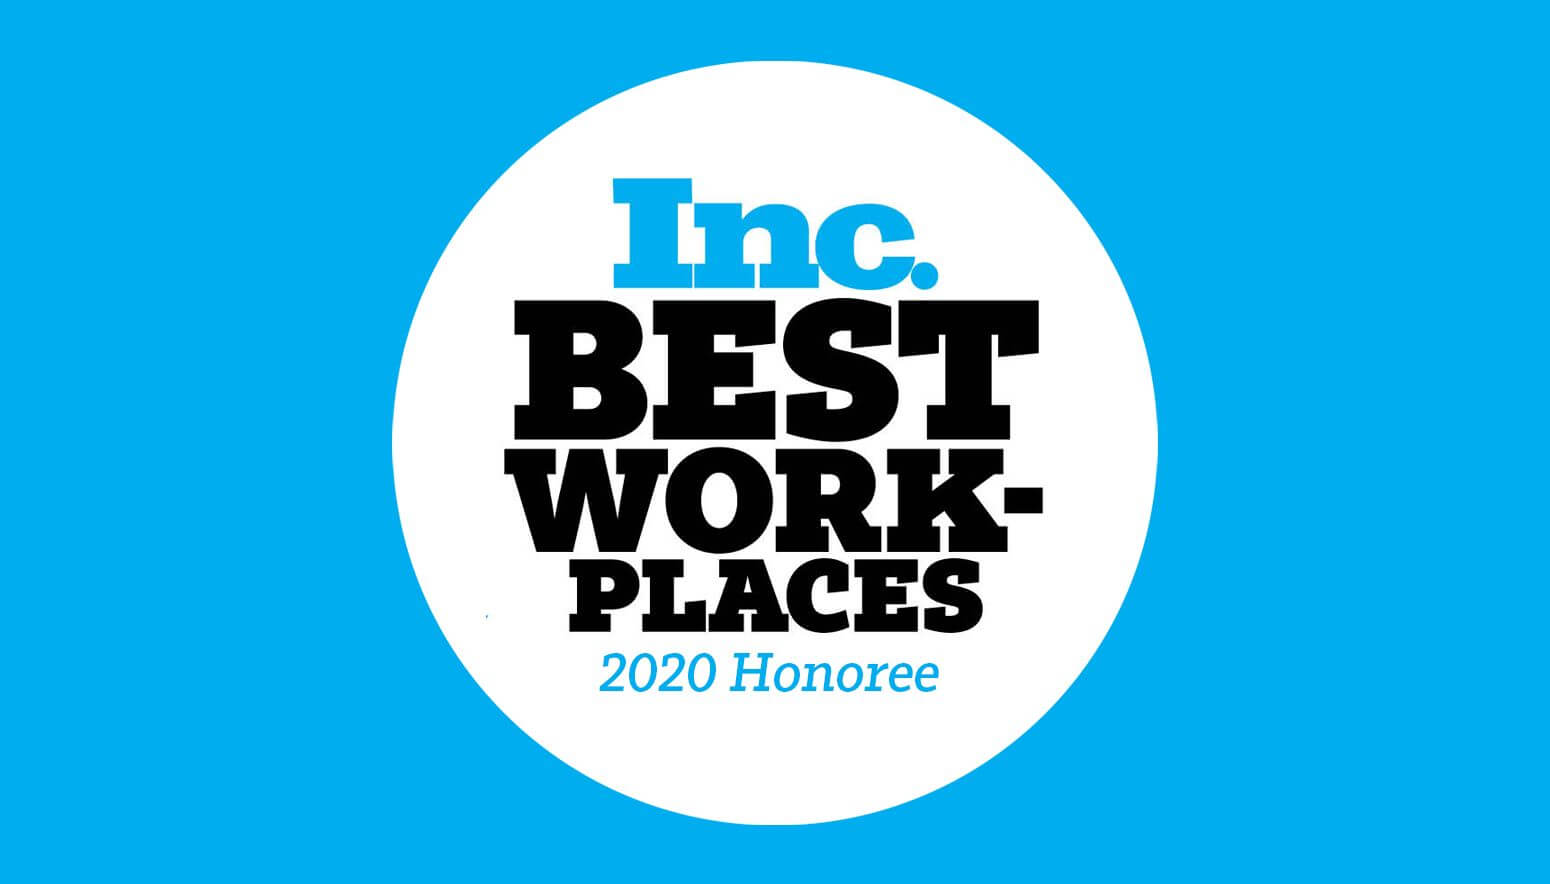 Socialfix Named Inc Best Work Places 2020 Honoree